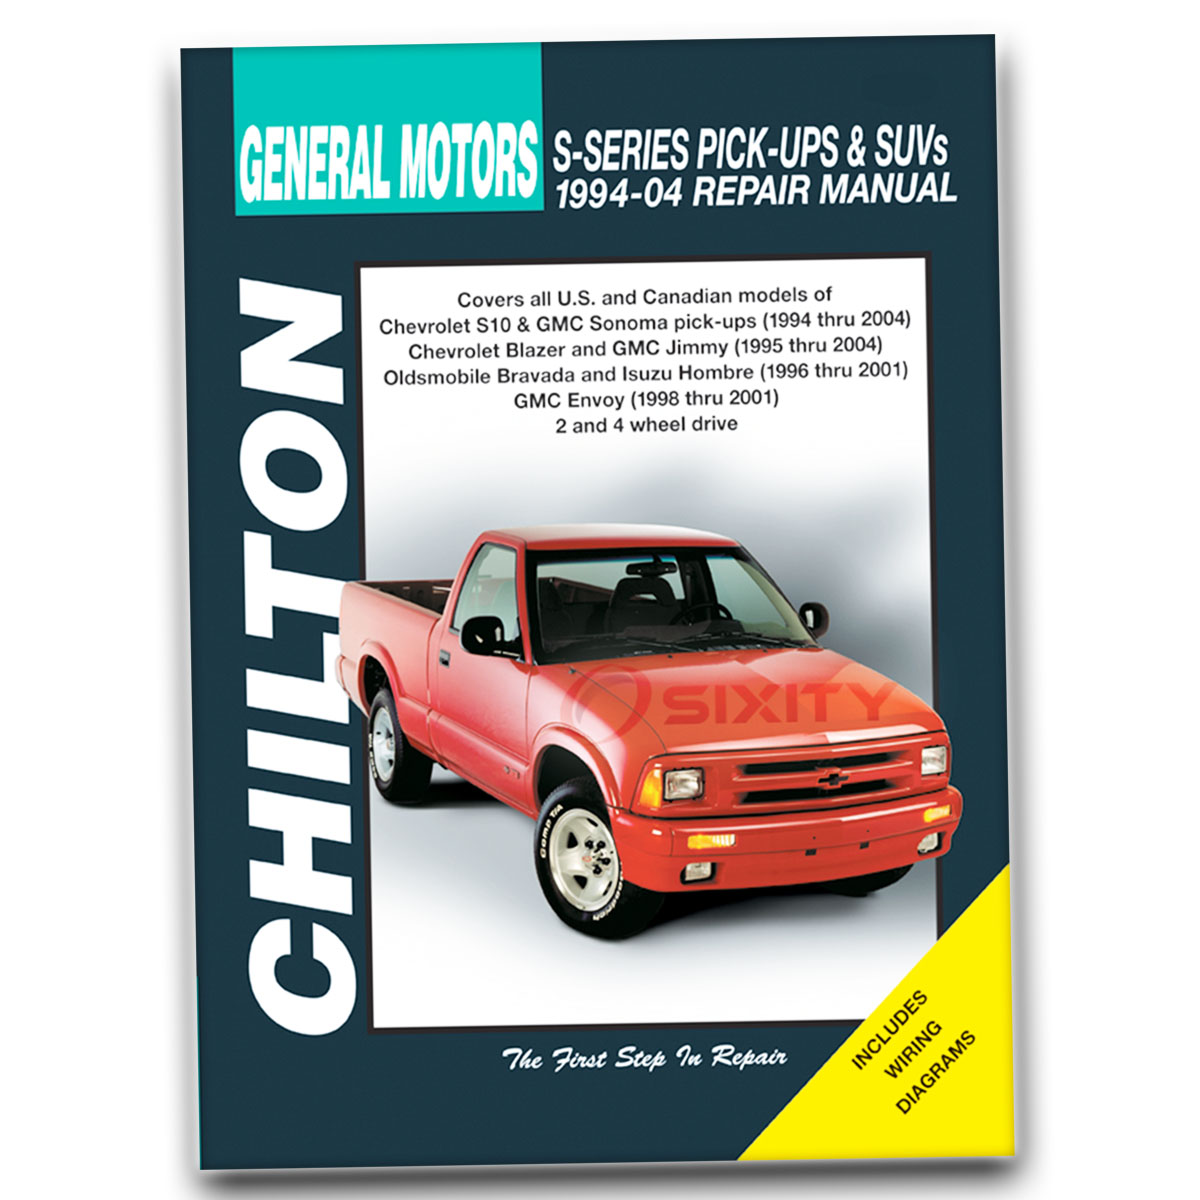 2003 chevy trailblazer ls owners manual